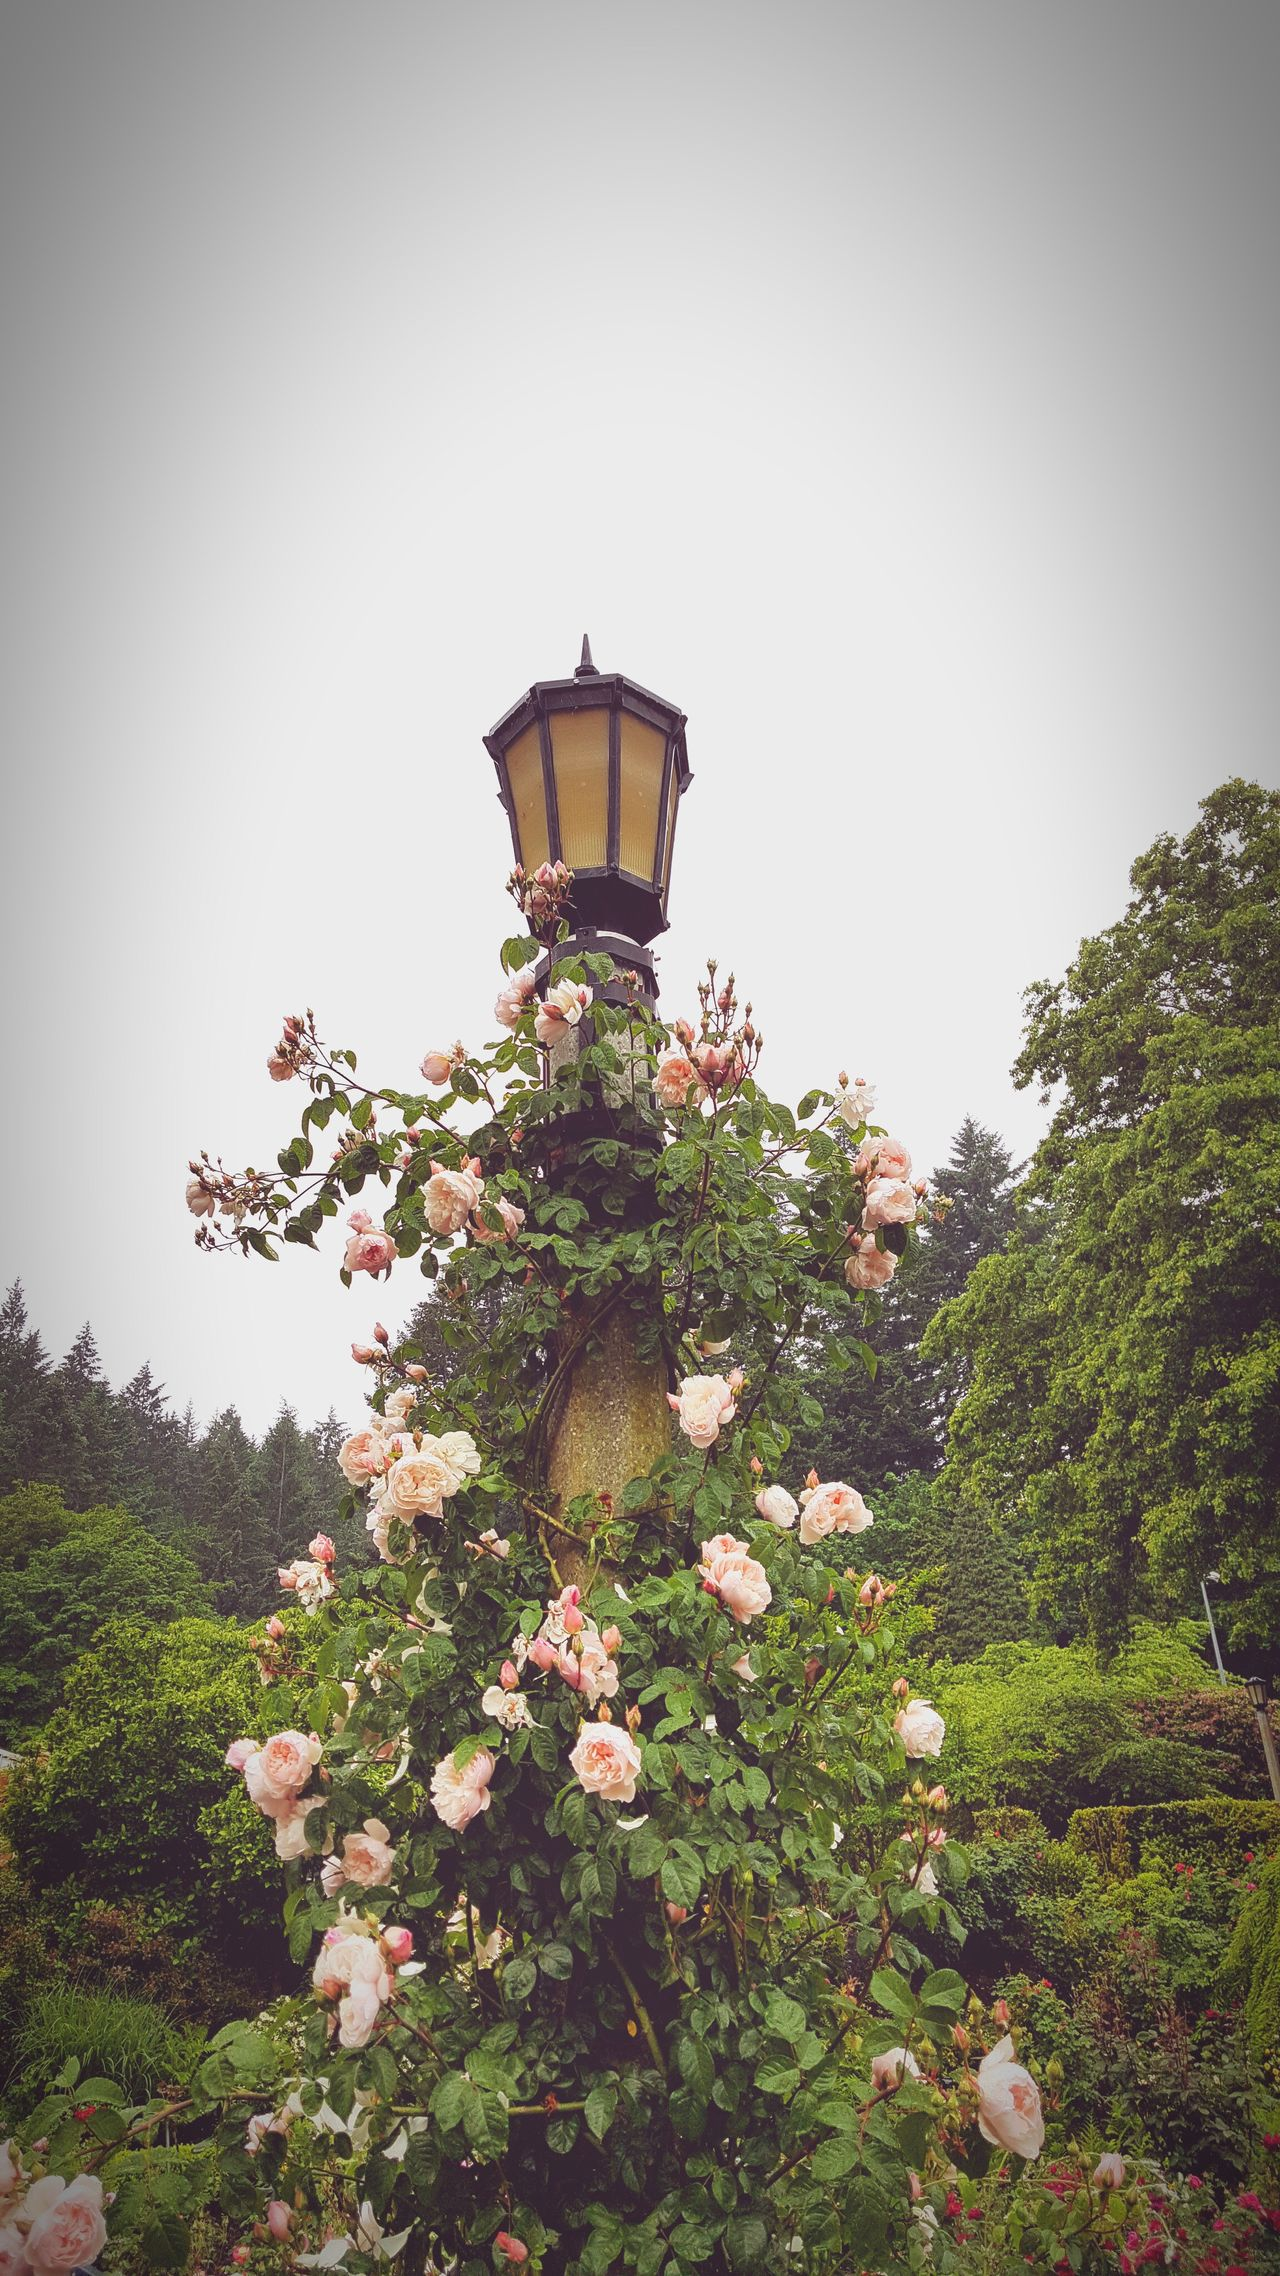 Something out of a fairytale at Portland Rose Garen Flower Growth Freshness Plant Fragility Green Color Beauty In Nature Botany Nature Park - Man Made Space In Bloom Day Blossom Blooming Springtime Pink Color Outdoors Flower Head Formal Garden Petal Pink Roses Climber Pinkroses Pink Rose Pink Flowers Pink Roses